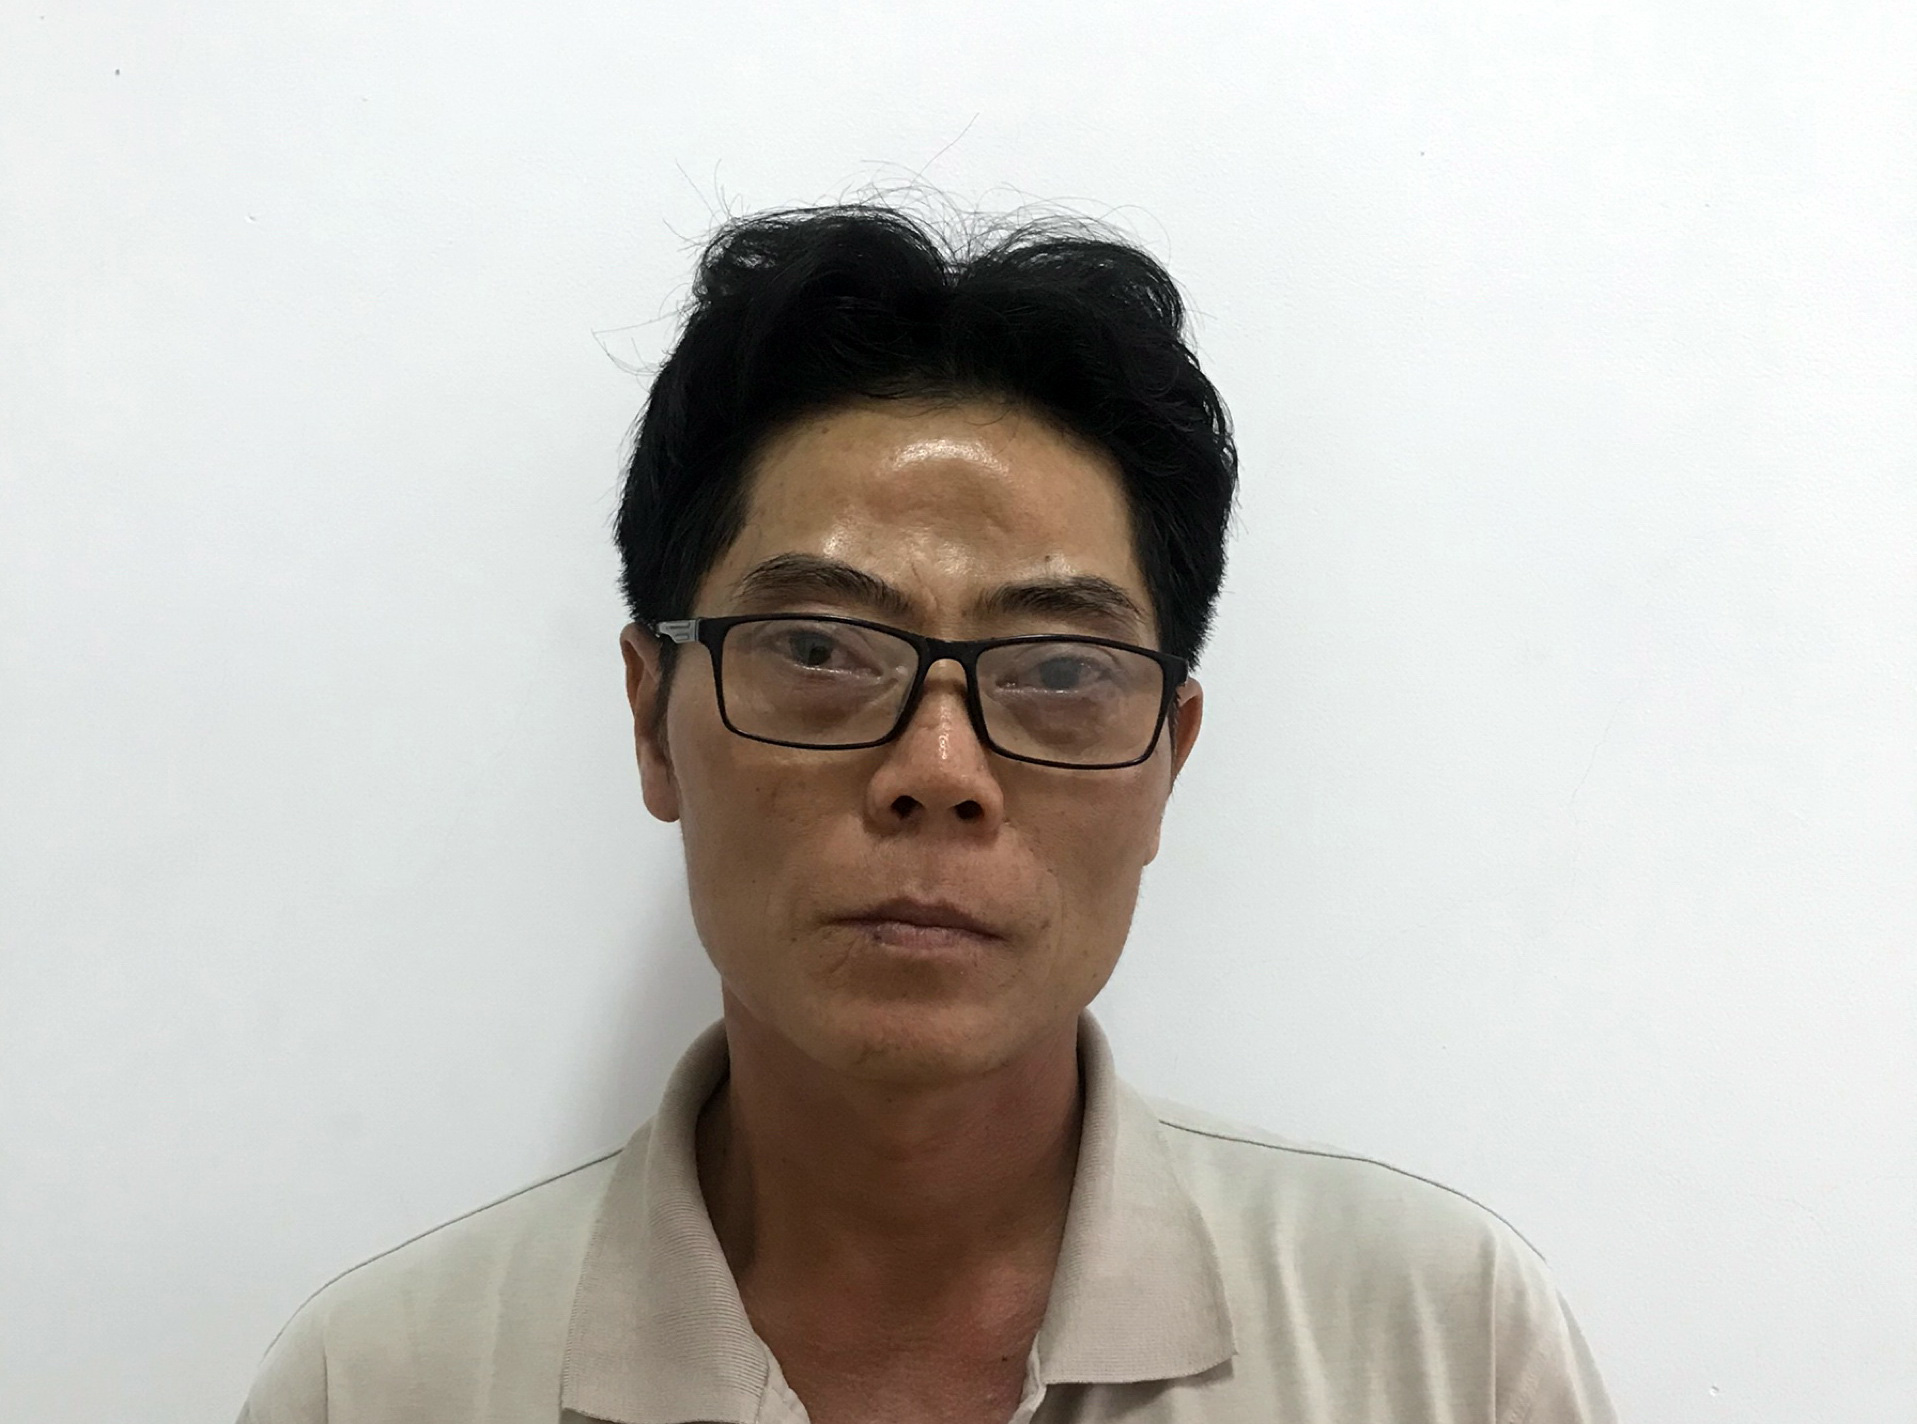 Man captured for murdering, raping 5-year-old girl in southern Vietnam